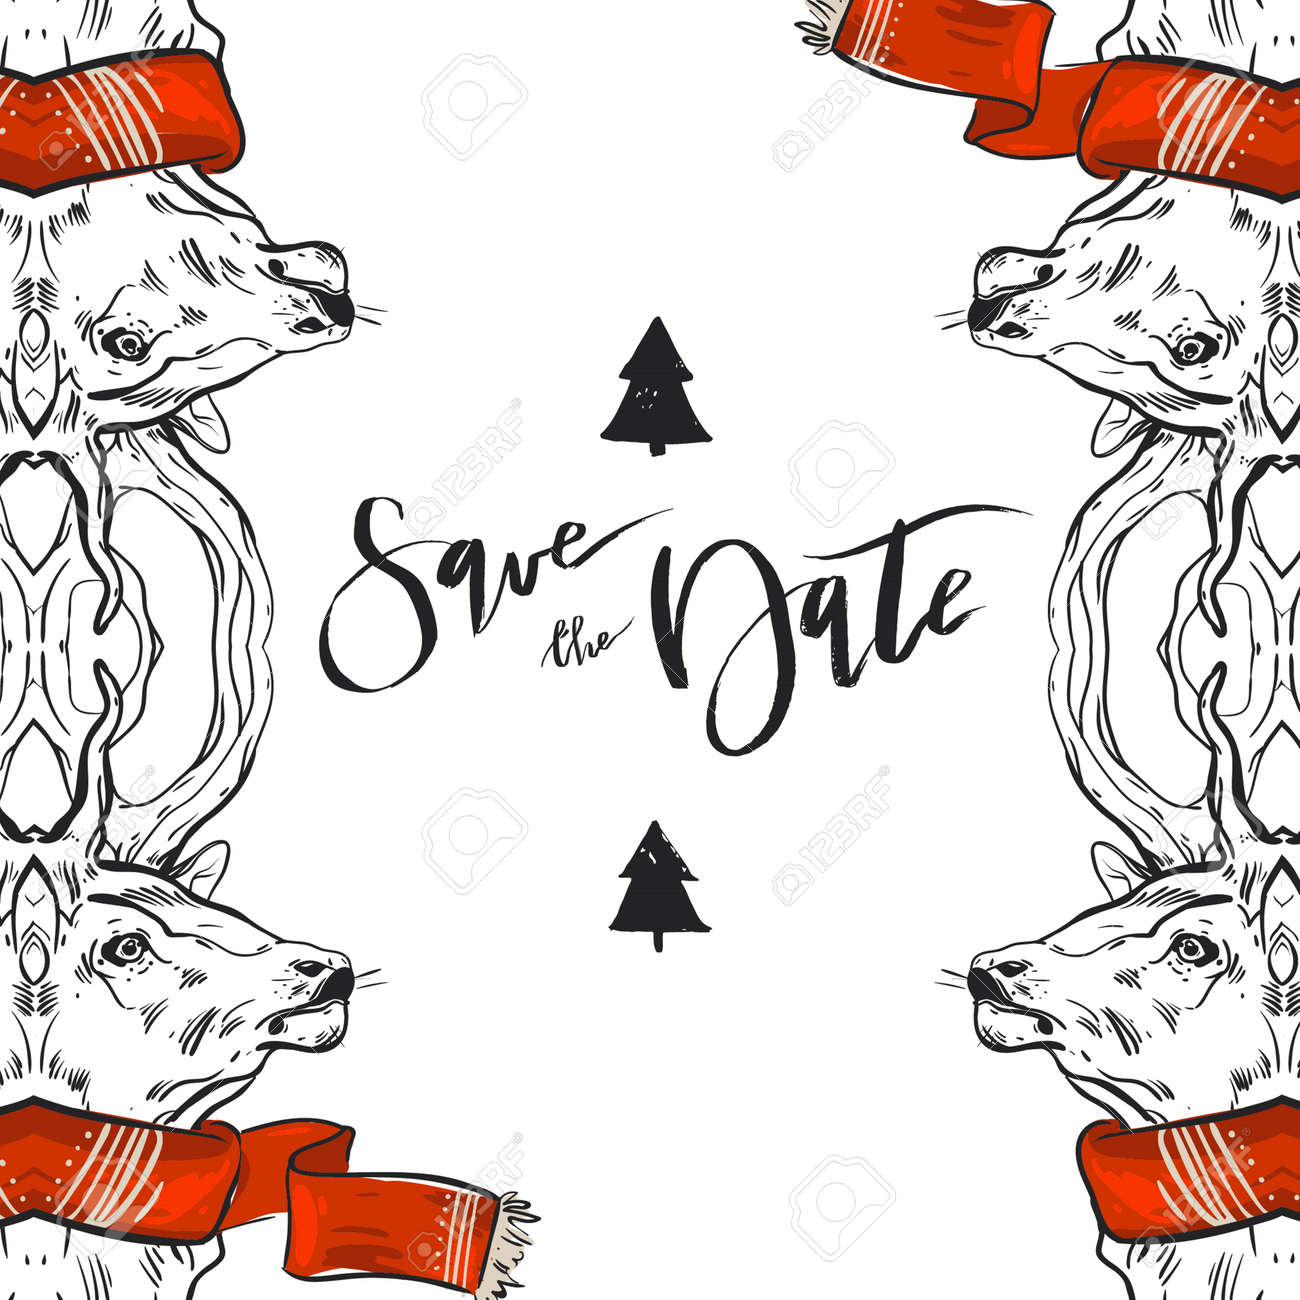 Christmas Save The Date Clipart.Hand Drawn Graphic Merry Christmas Save The Date Greeting Decoration